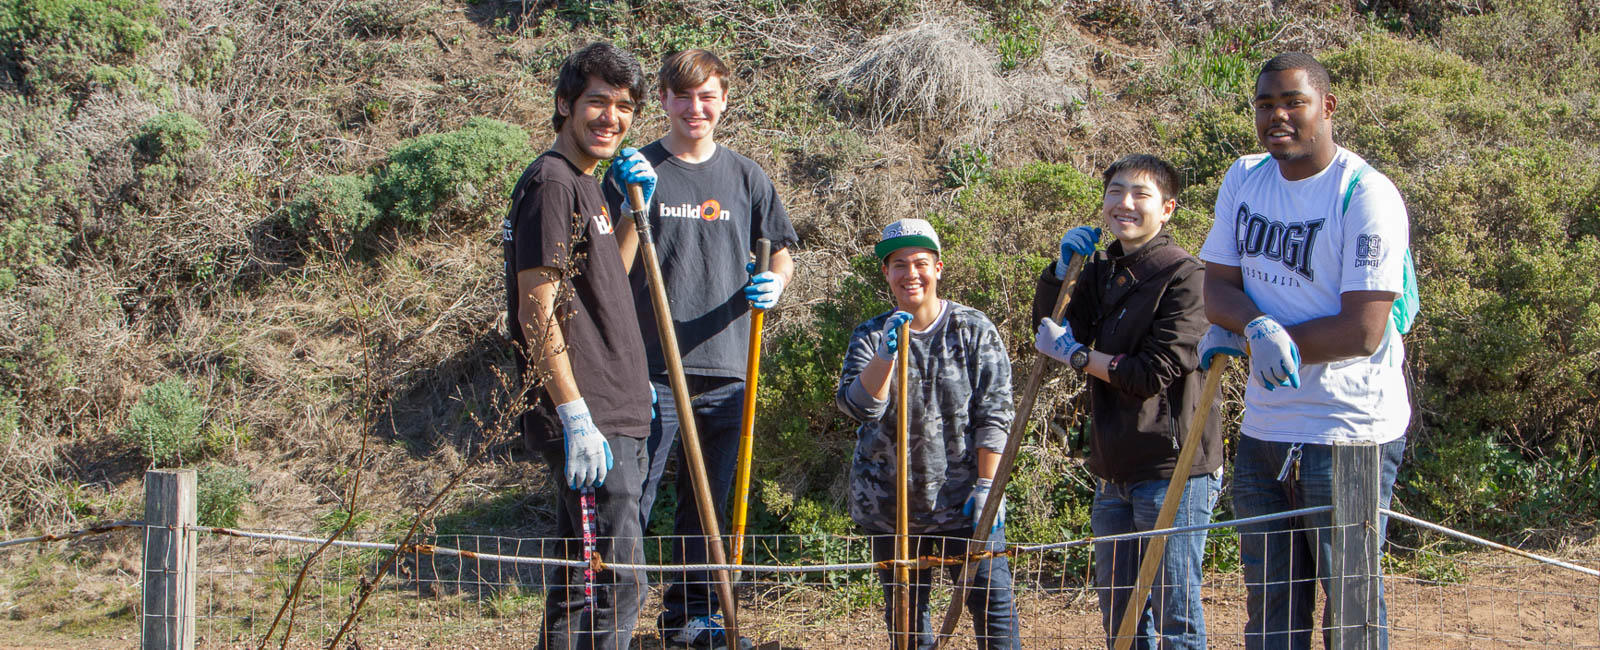 Teens Volunteering with Stewardship Trails Program